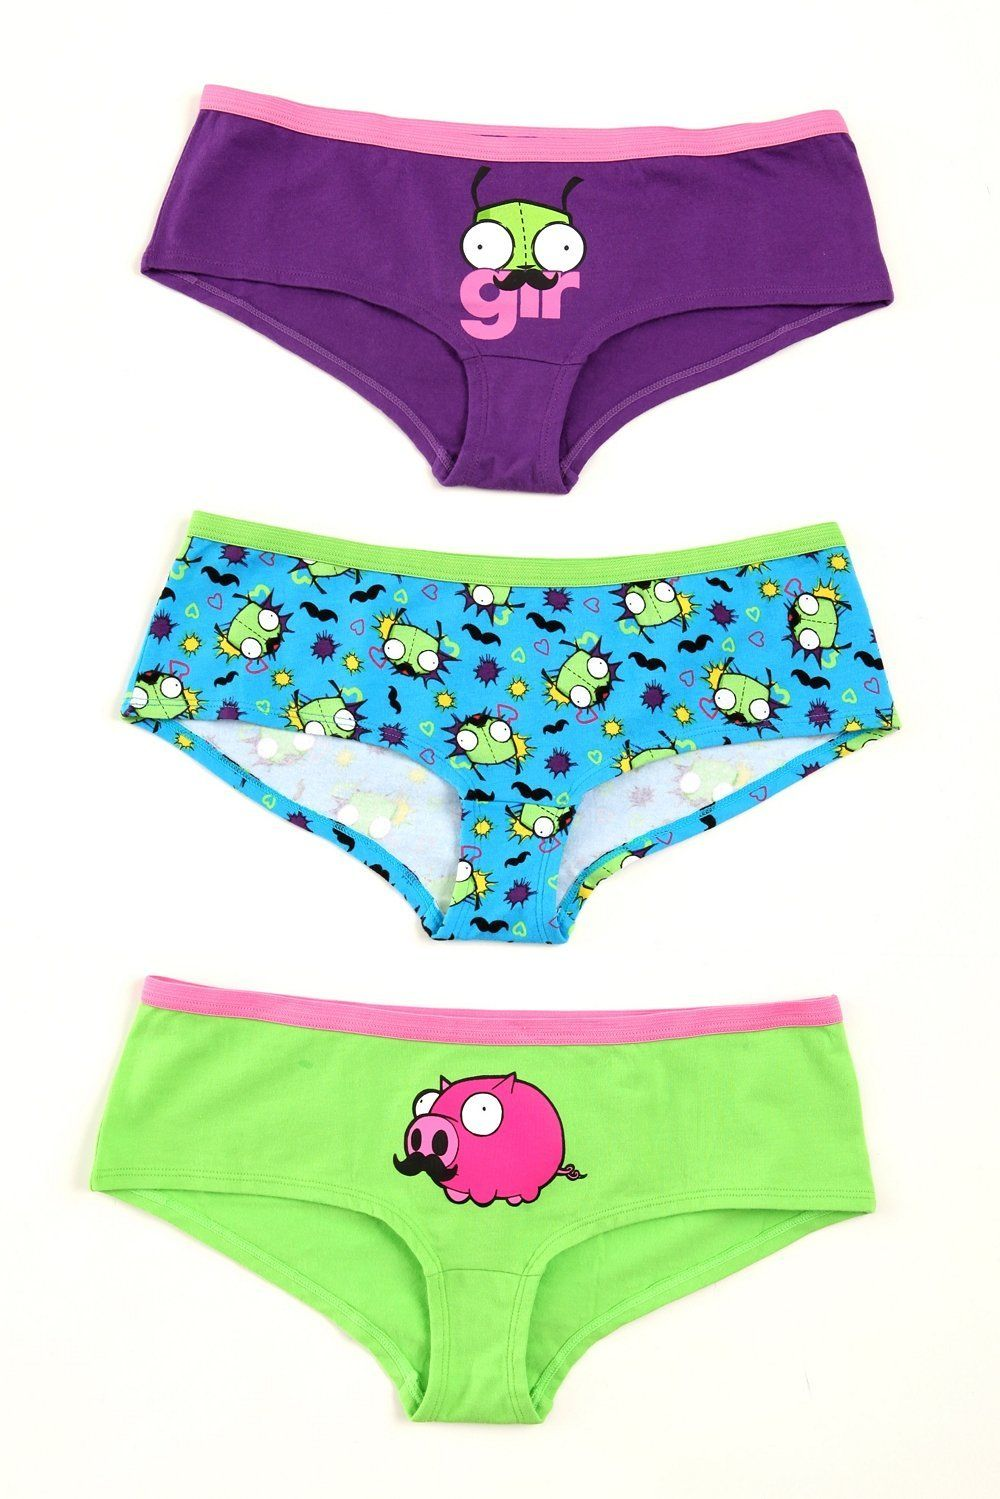 Invader Zim Mustache Hot Pants 3 Pack (With images) Hot